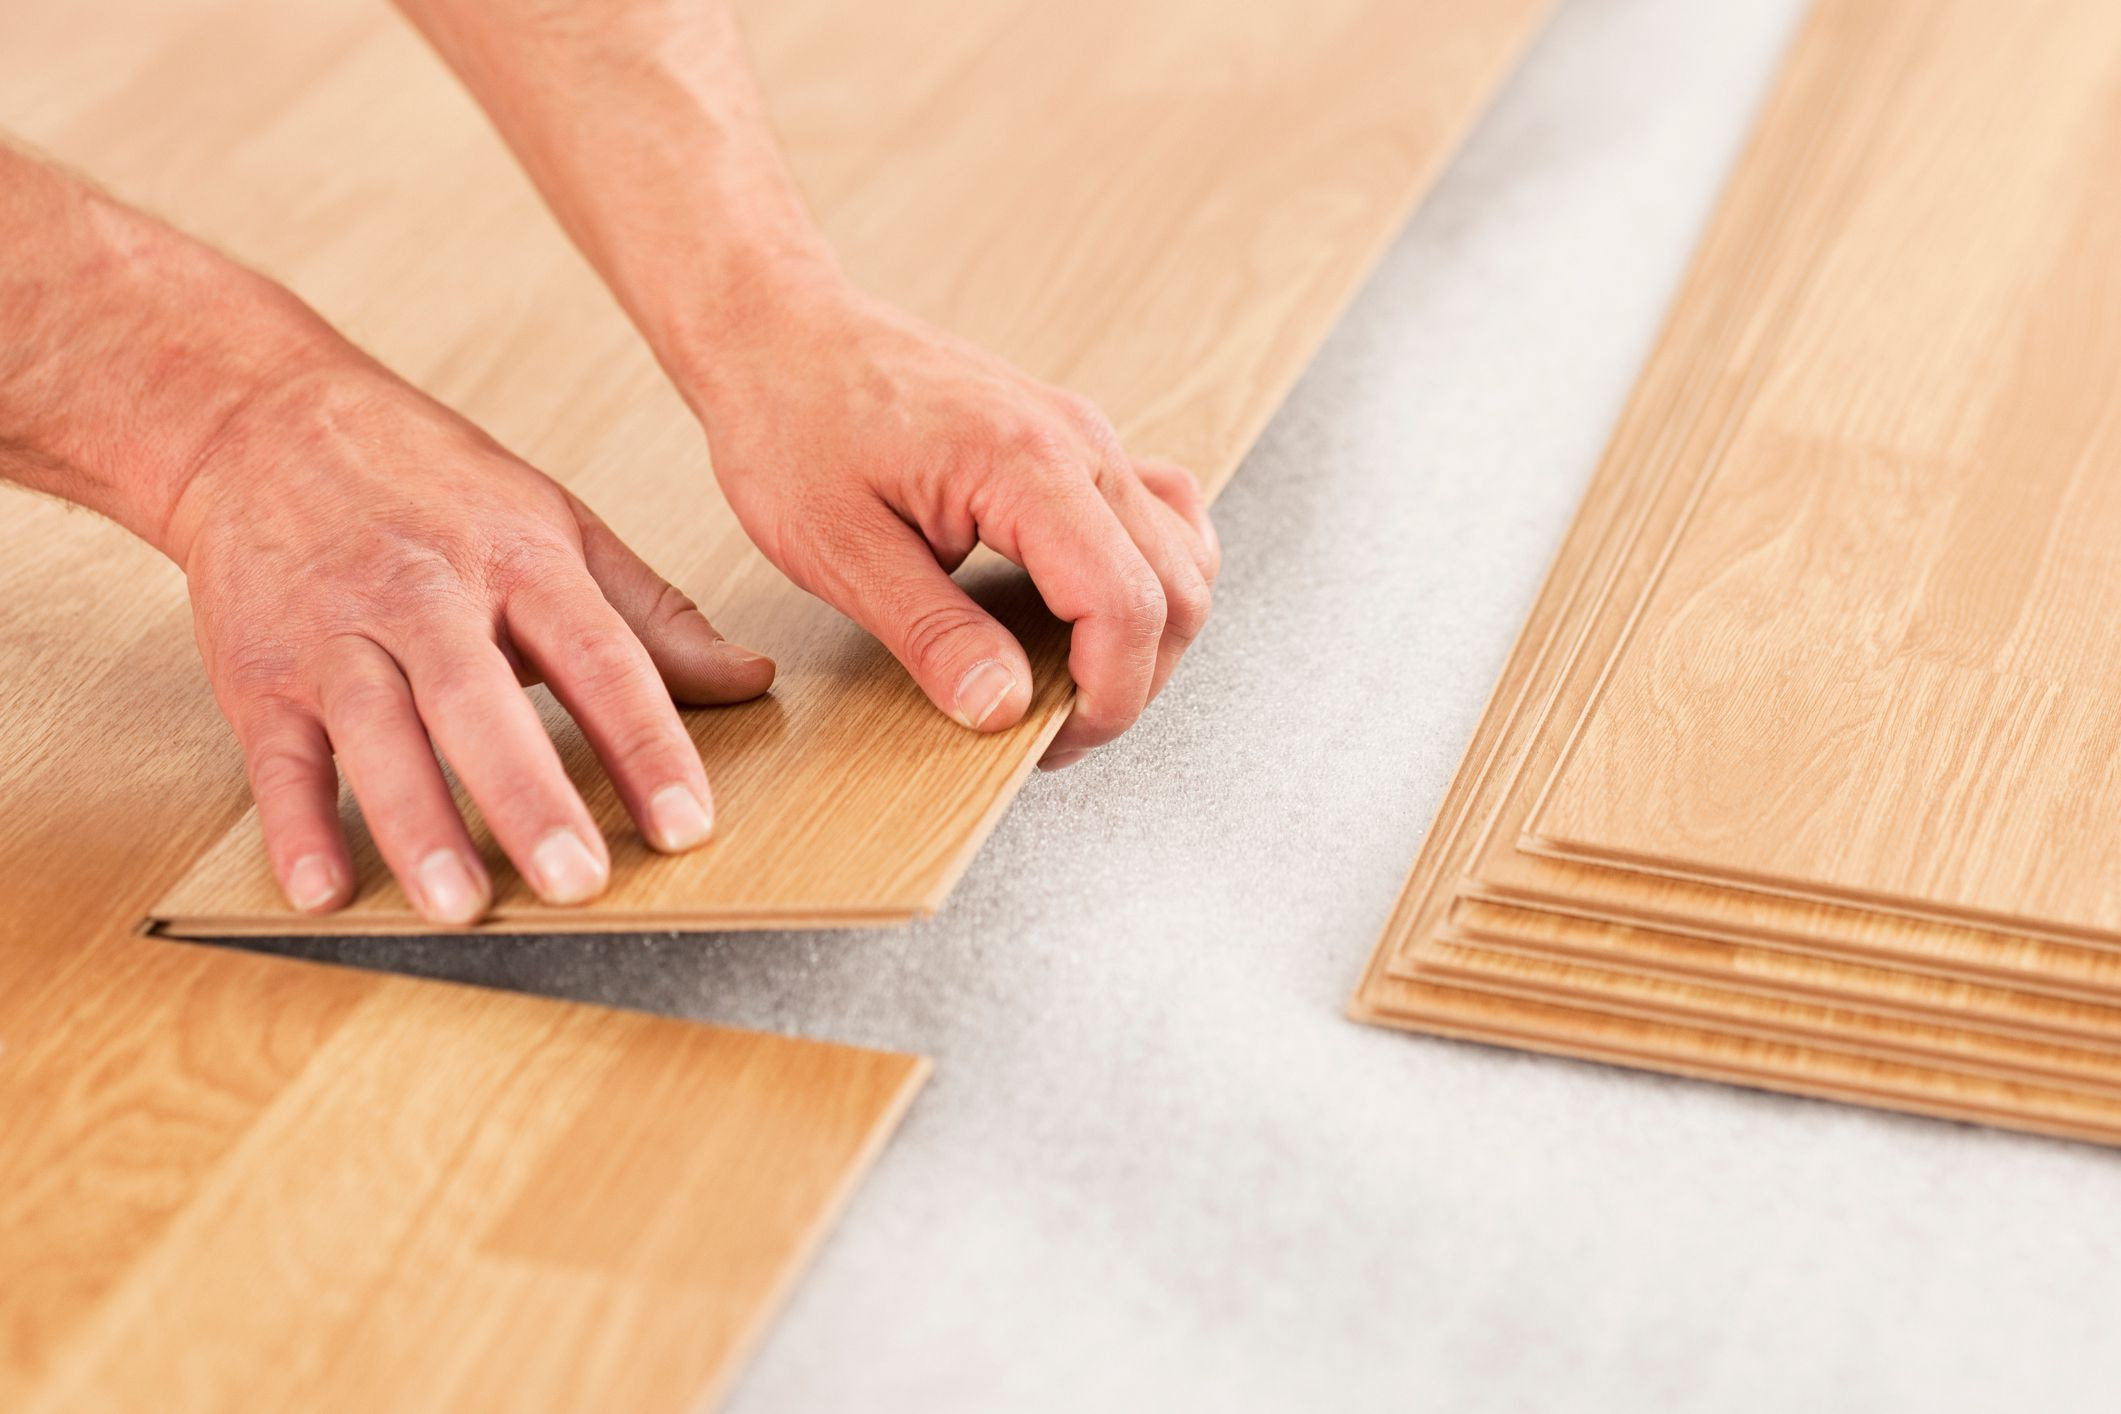 How to Lay A Hardwood Floor tongue and Groove Of Laminate Underlayment Pros and Cons Regarding Laminate Floor Install Gettyimages 154961561 588816495f9b58bdb3da1a02